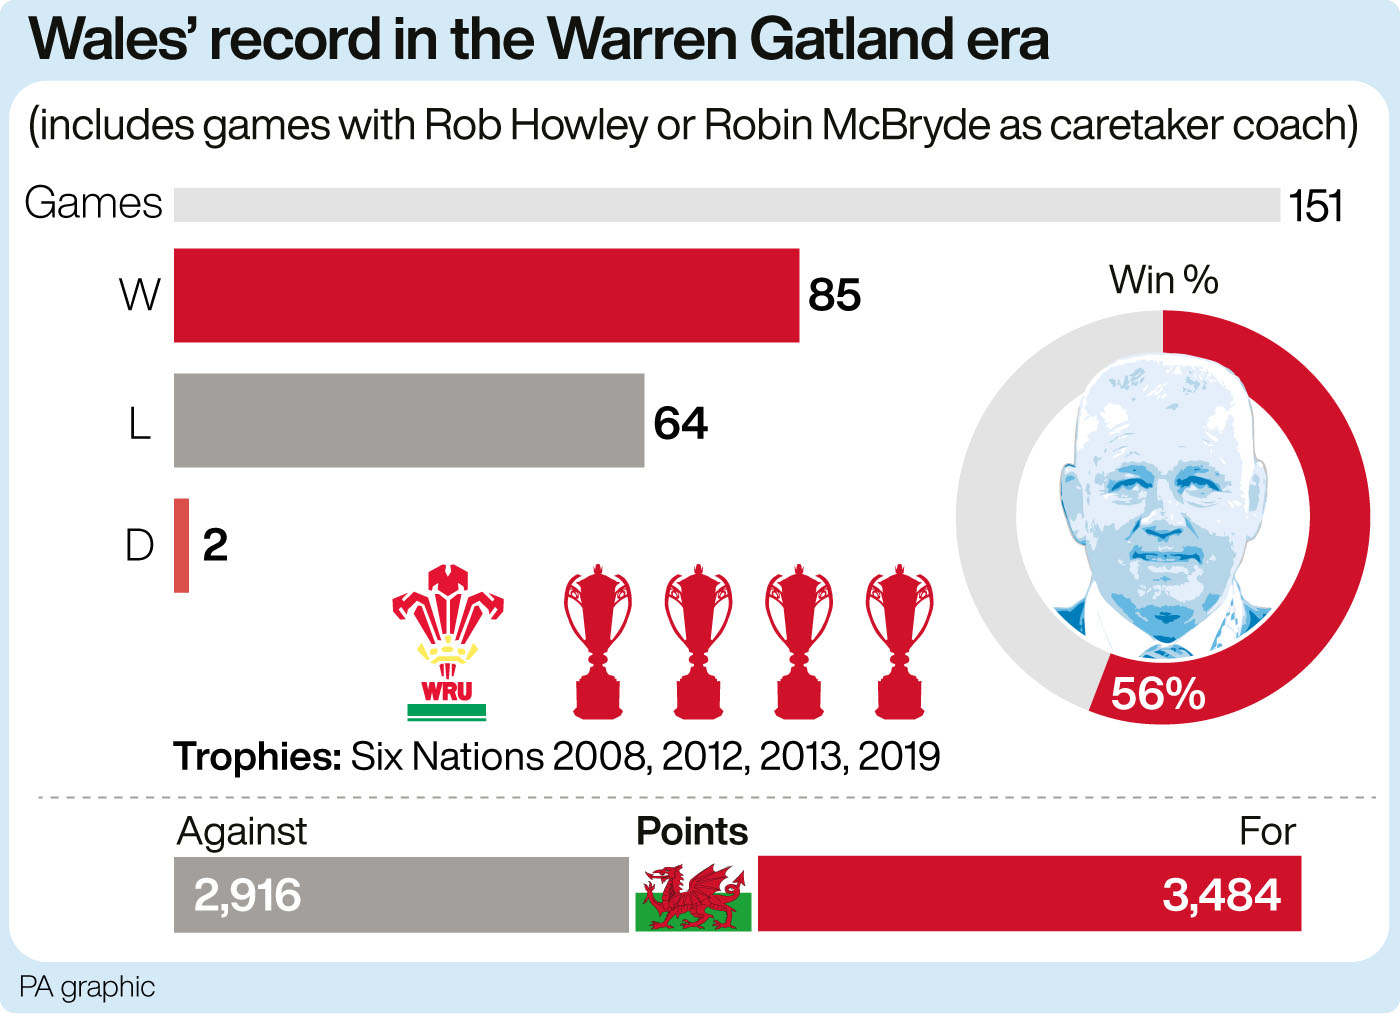 Wales' record in the Warren Gatland era